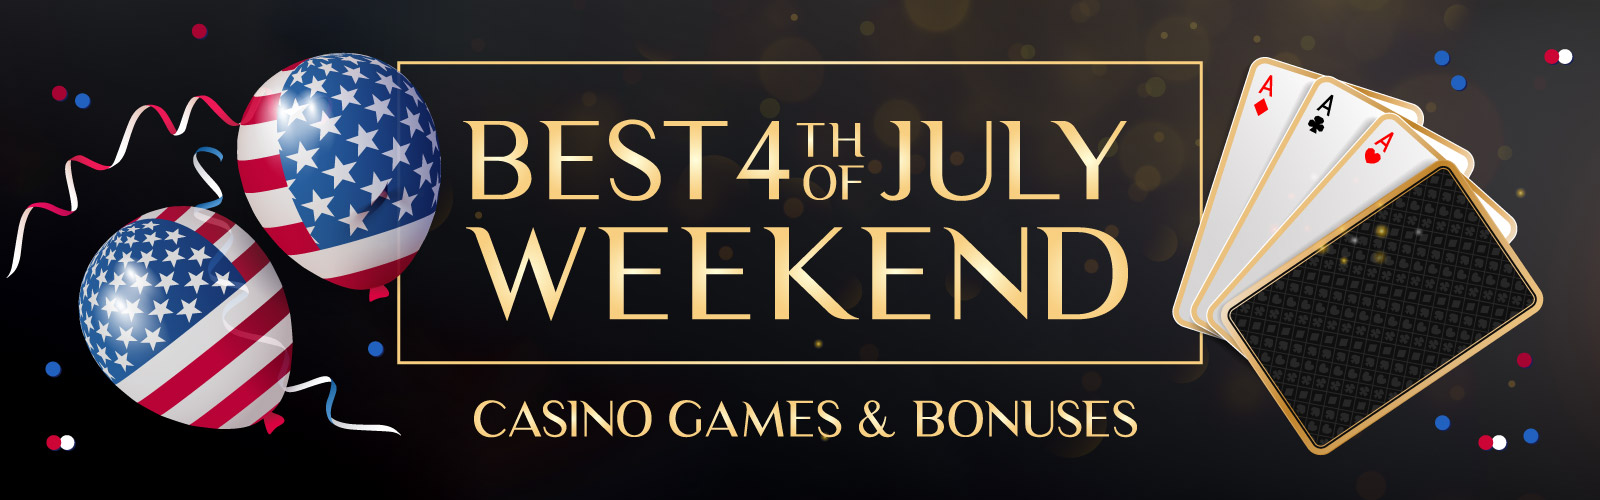 4th Of July Games, Slots & More!